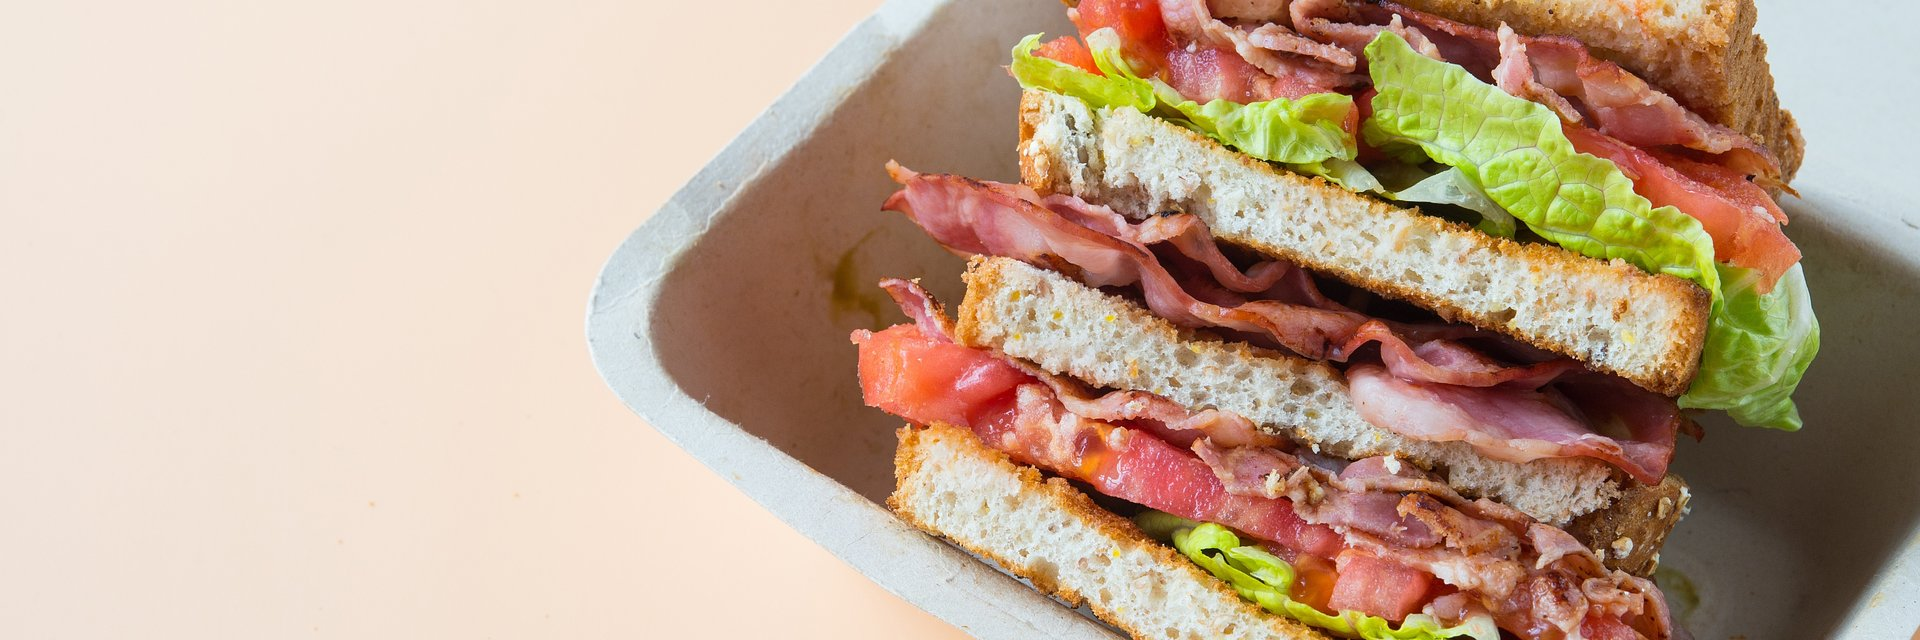 Delis Use These 7 Items to Make the BEST Sandwiches